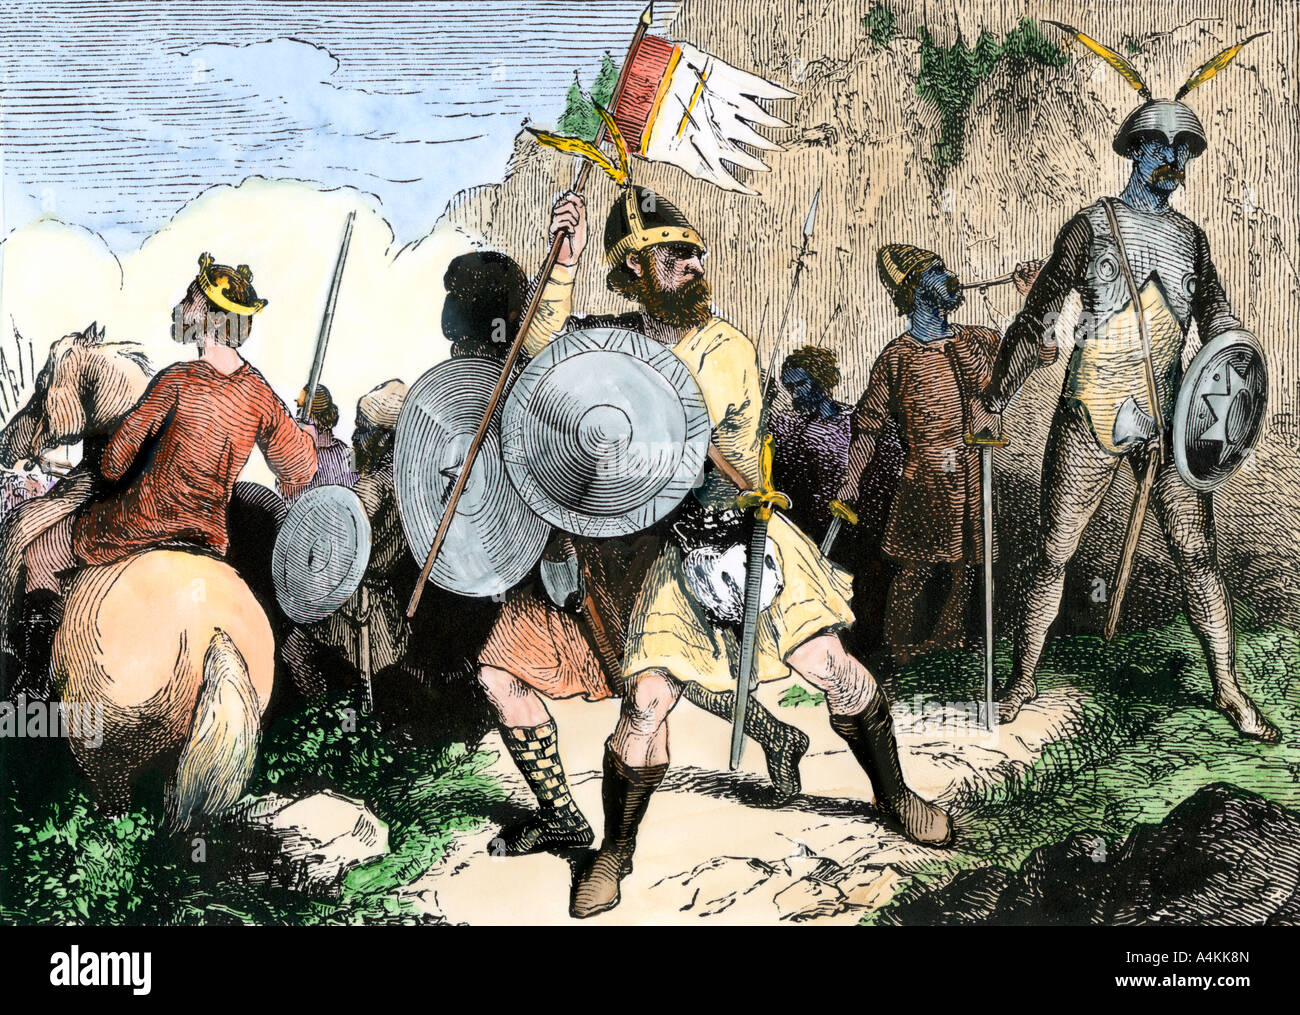 Anglo-Saxon warriors of the 10th century in the British Isles. Hand-colored woodcut - Stock Image